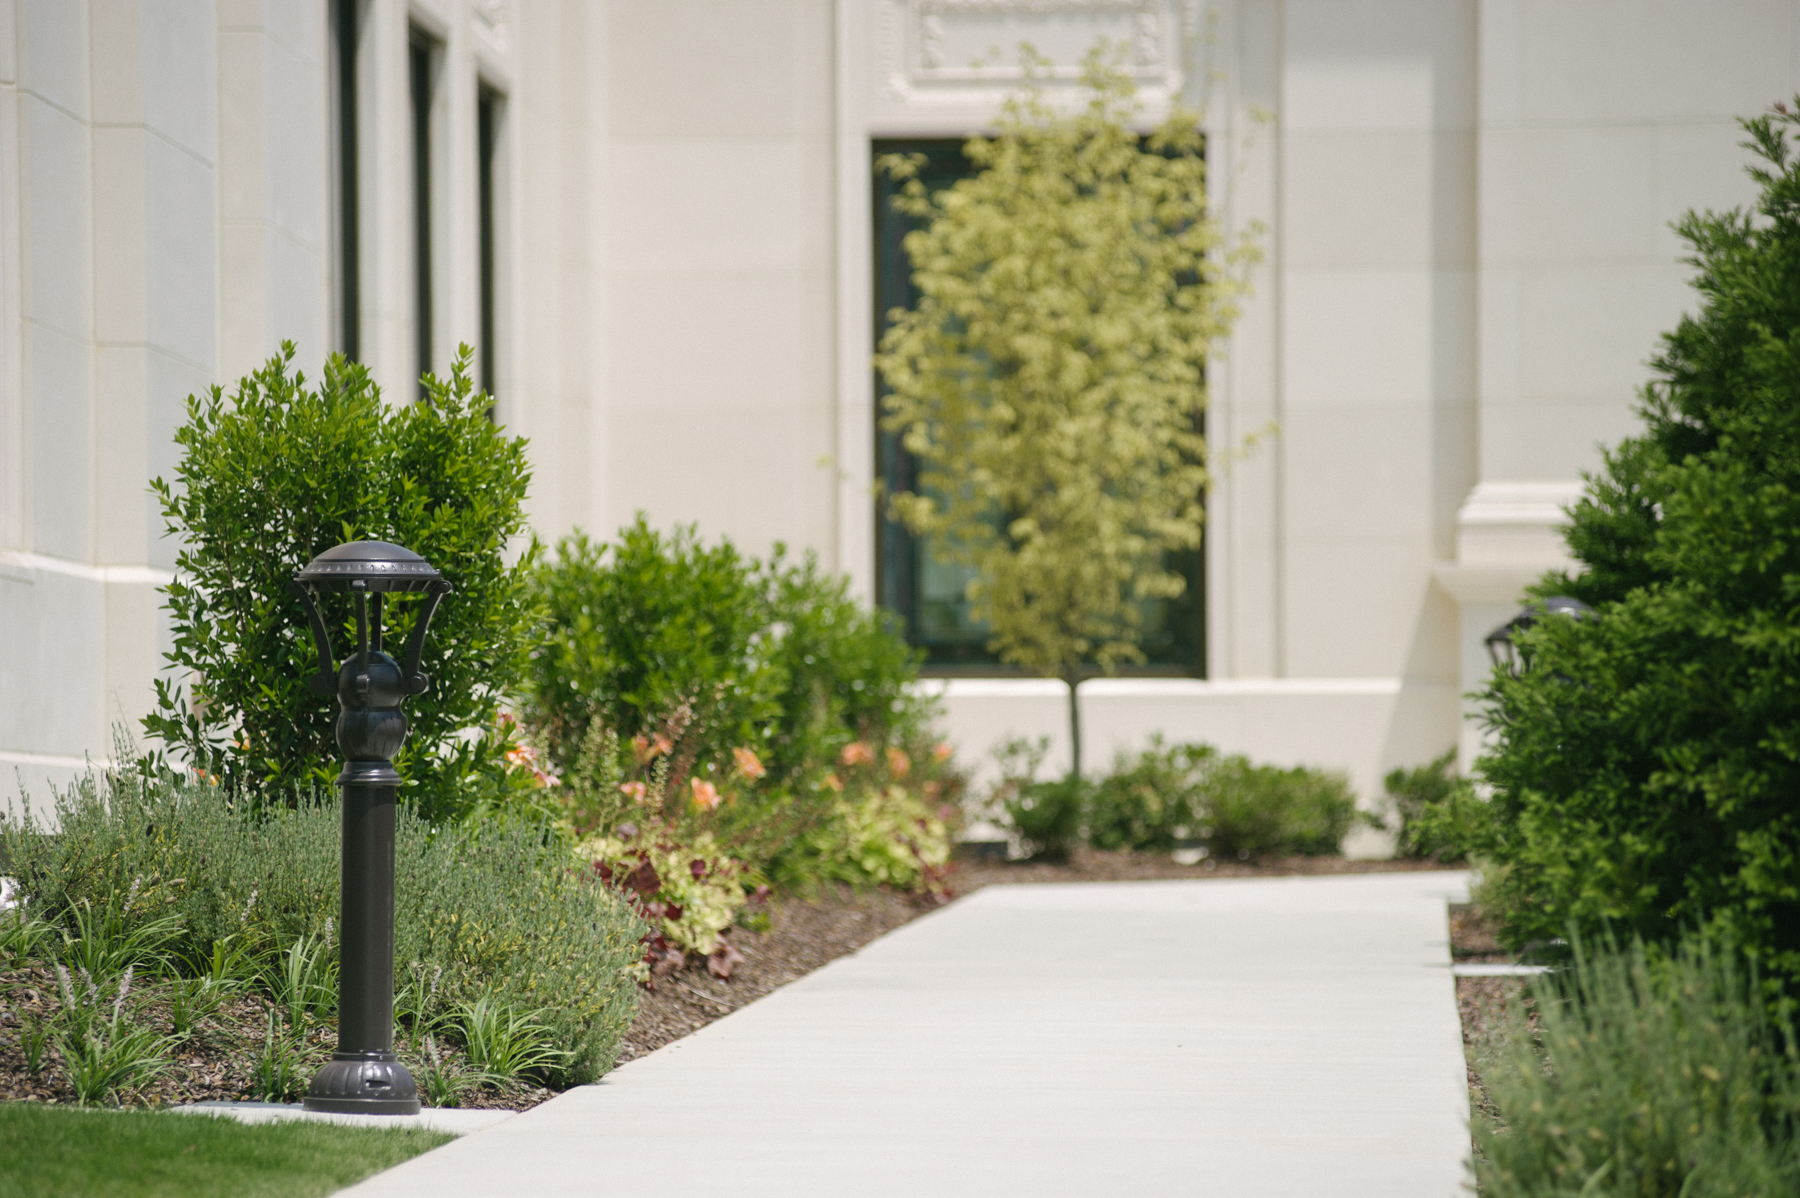 commercial landscape plants on walkway designed for curb appeal